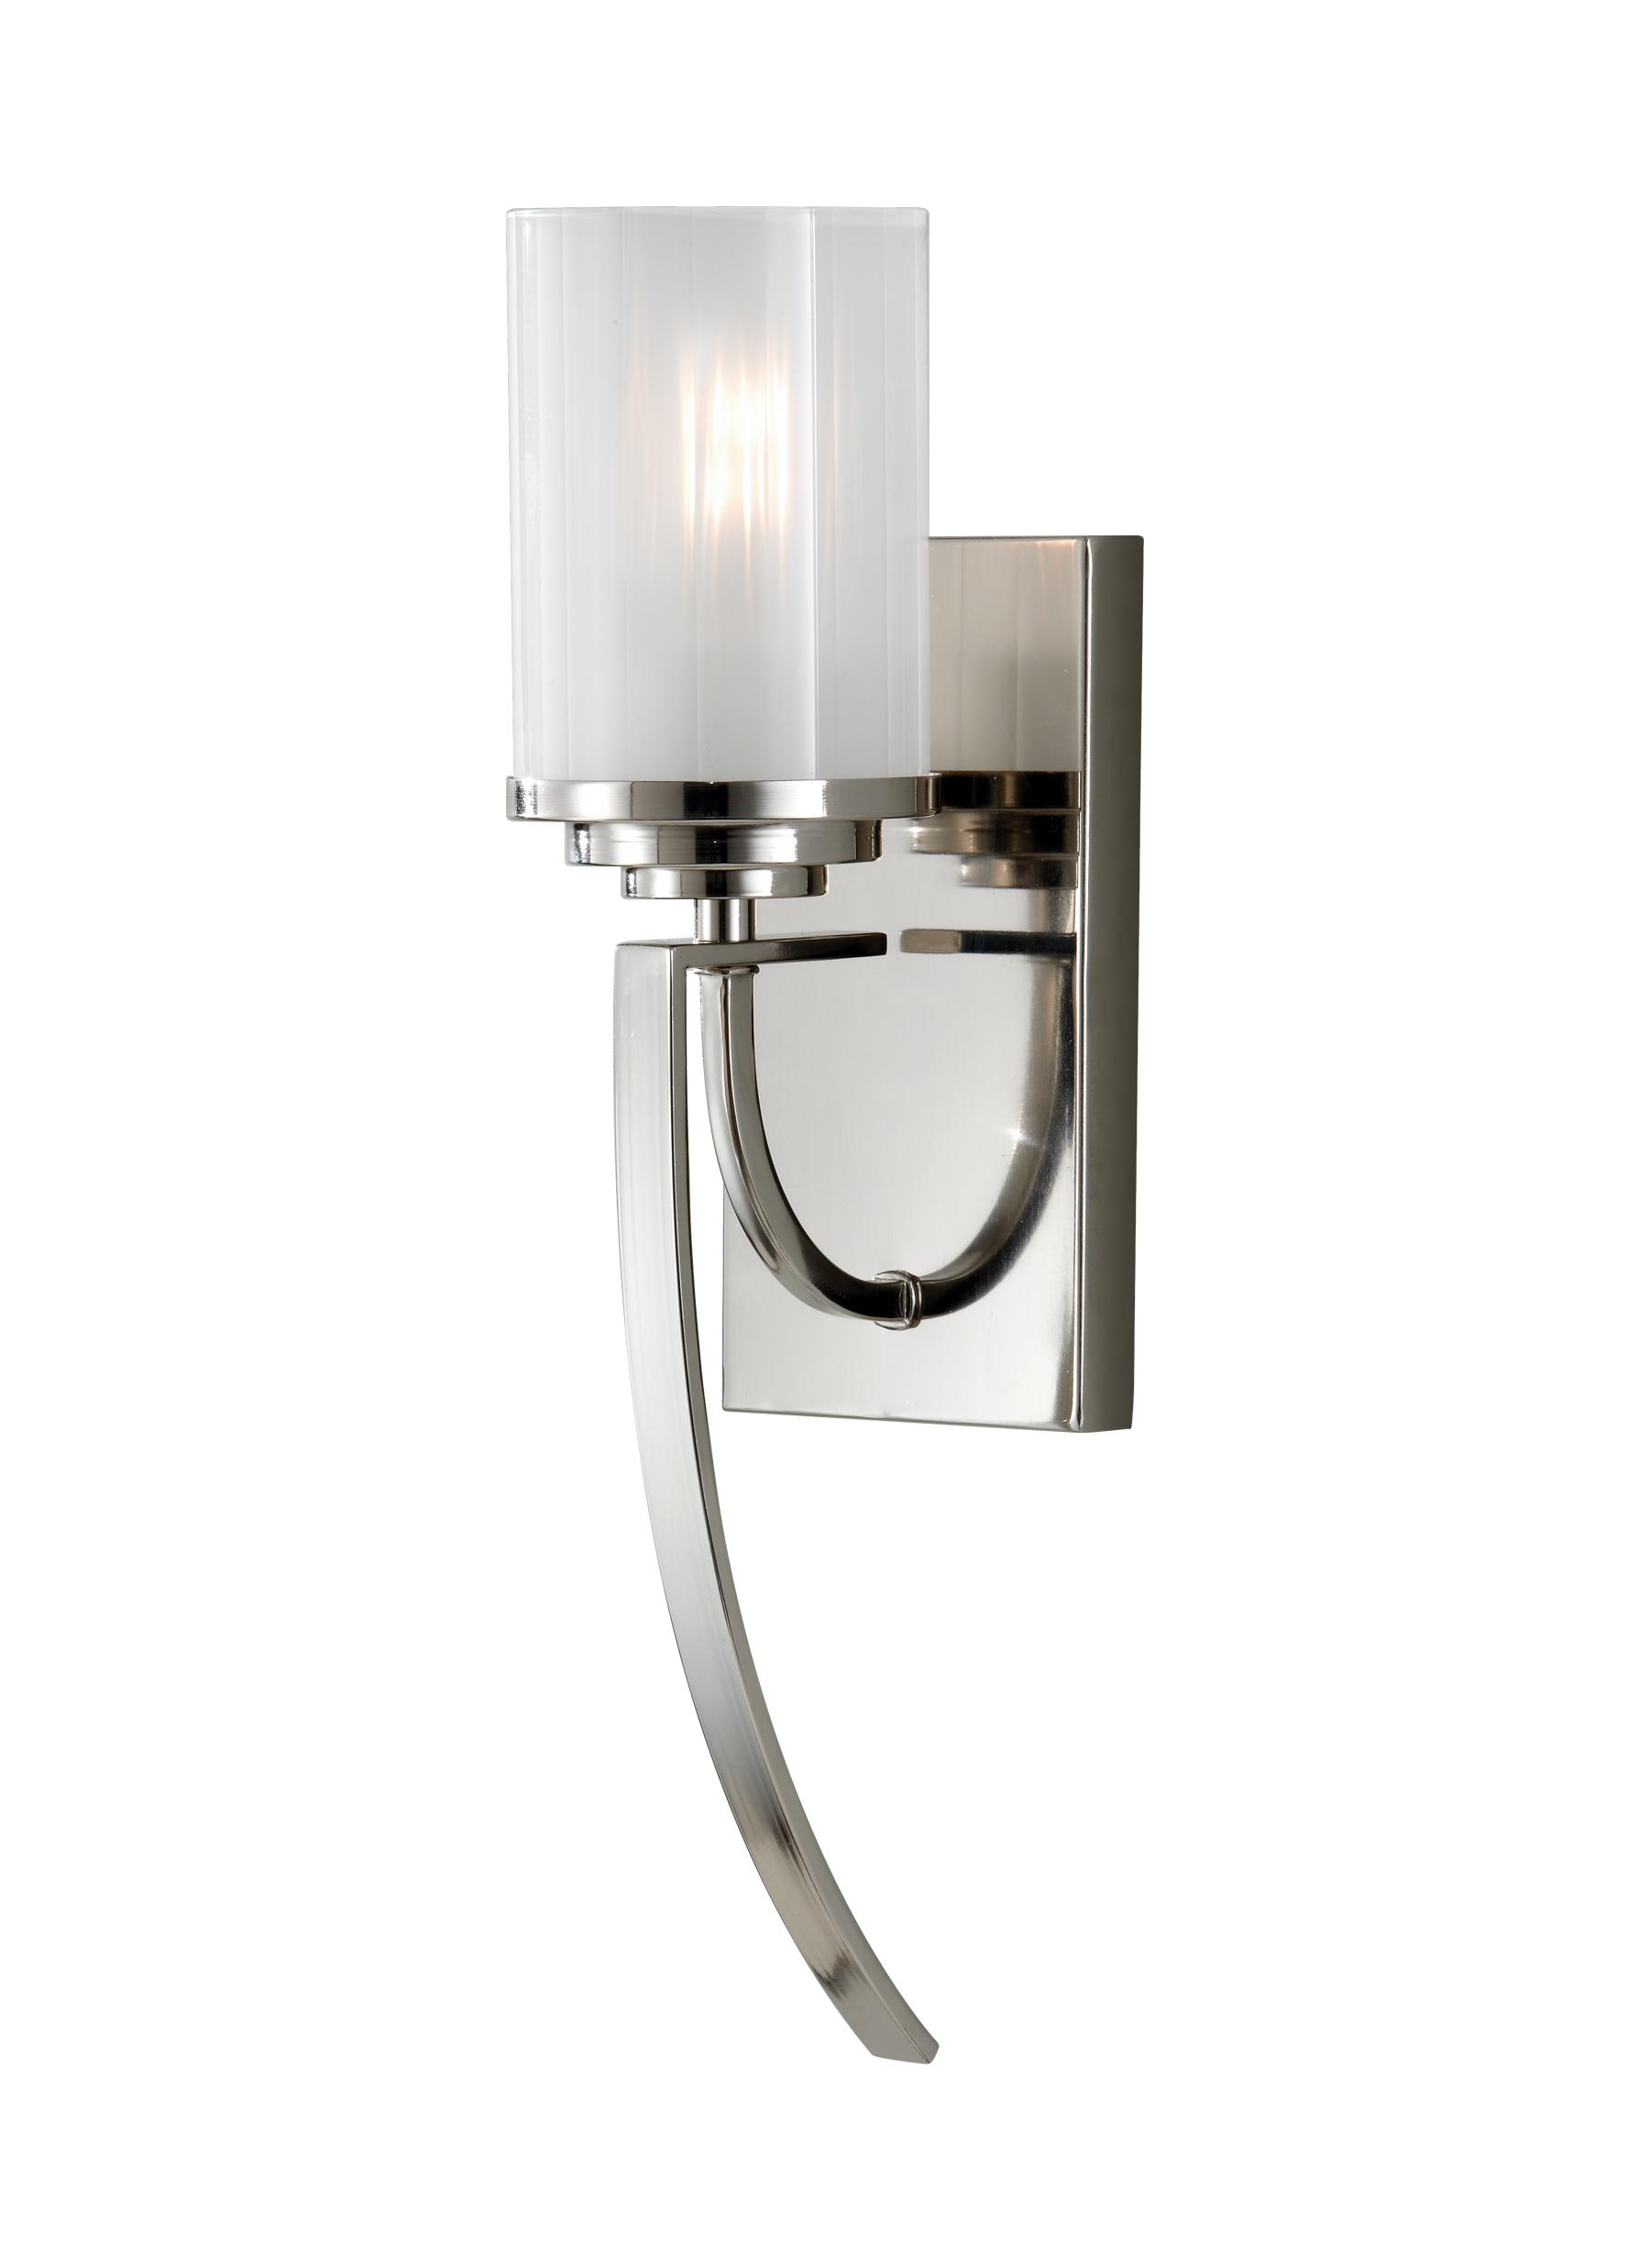 hudson with productdetail wall light valley pn gordon htm sconce one shade white nickel polished hover zoom silk to